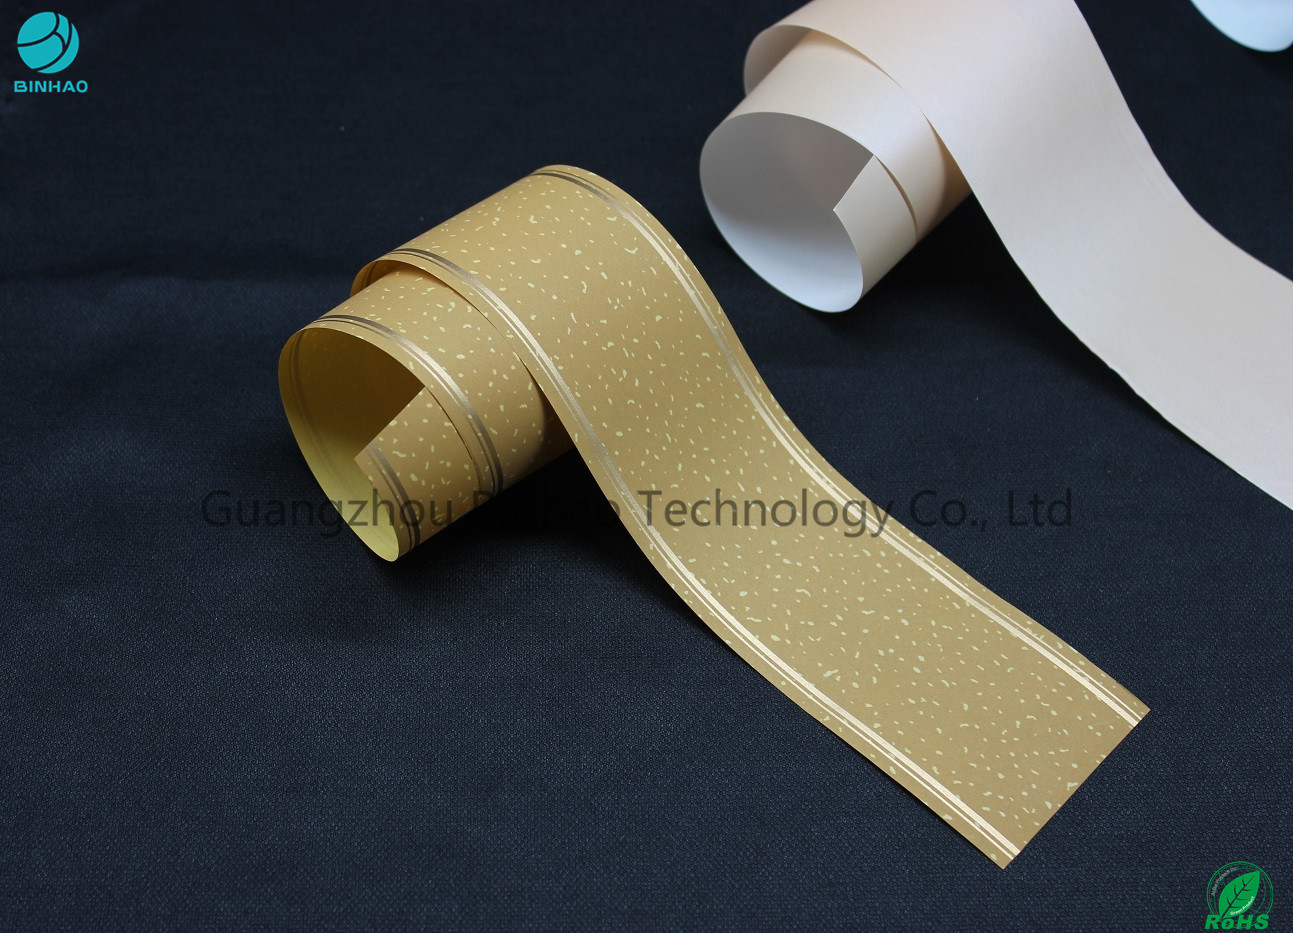 33g Customized Tipping Base Paper With Hot Stamping Logo Pattern / Cigarette Filter Packaging